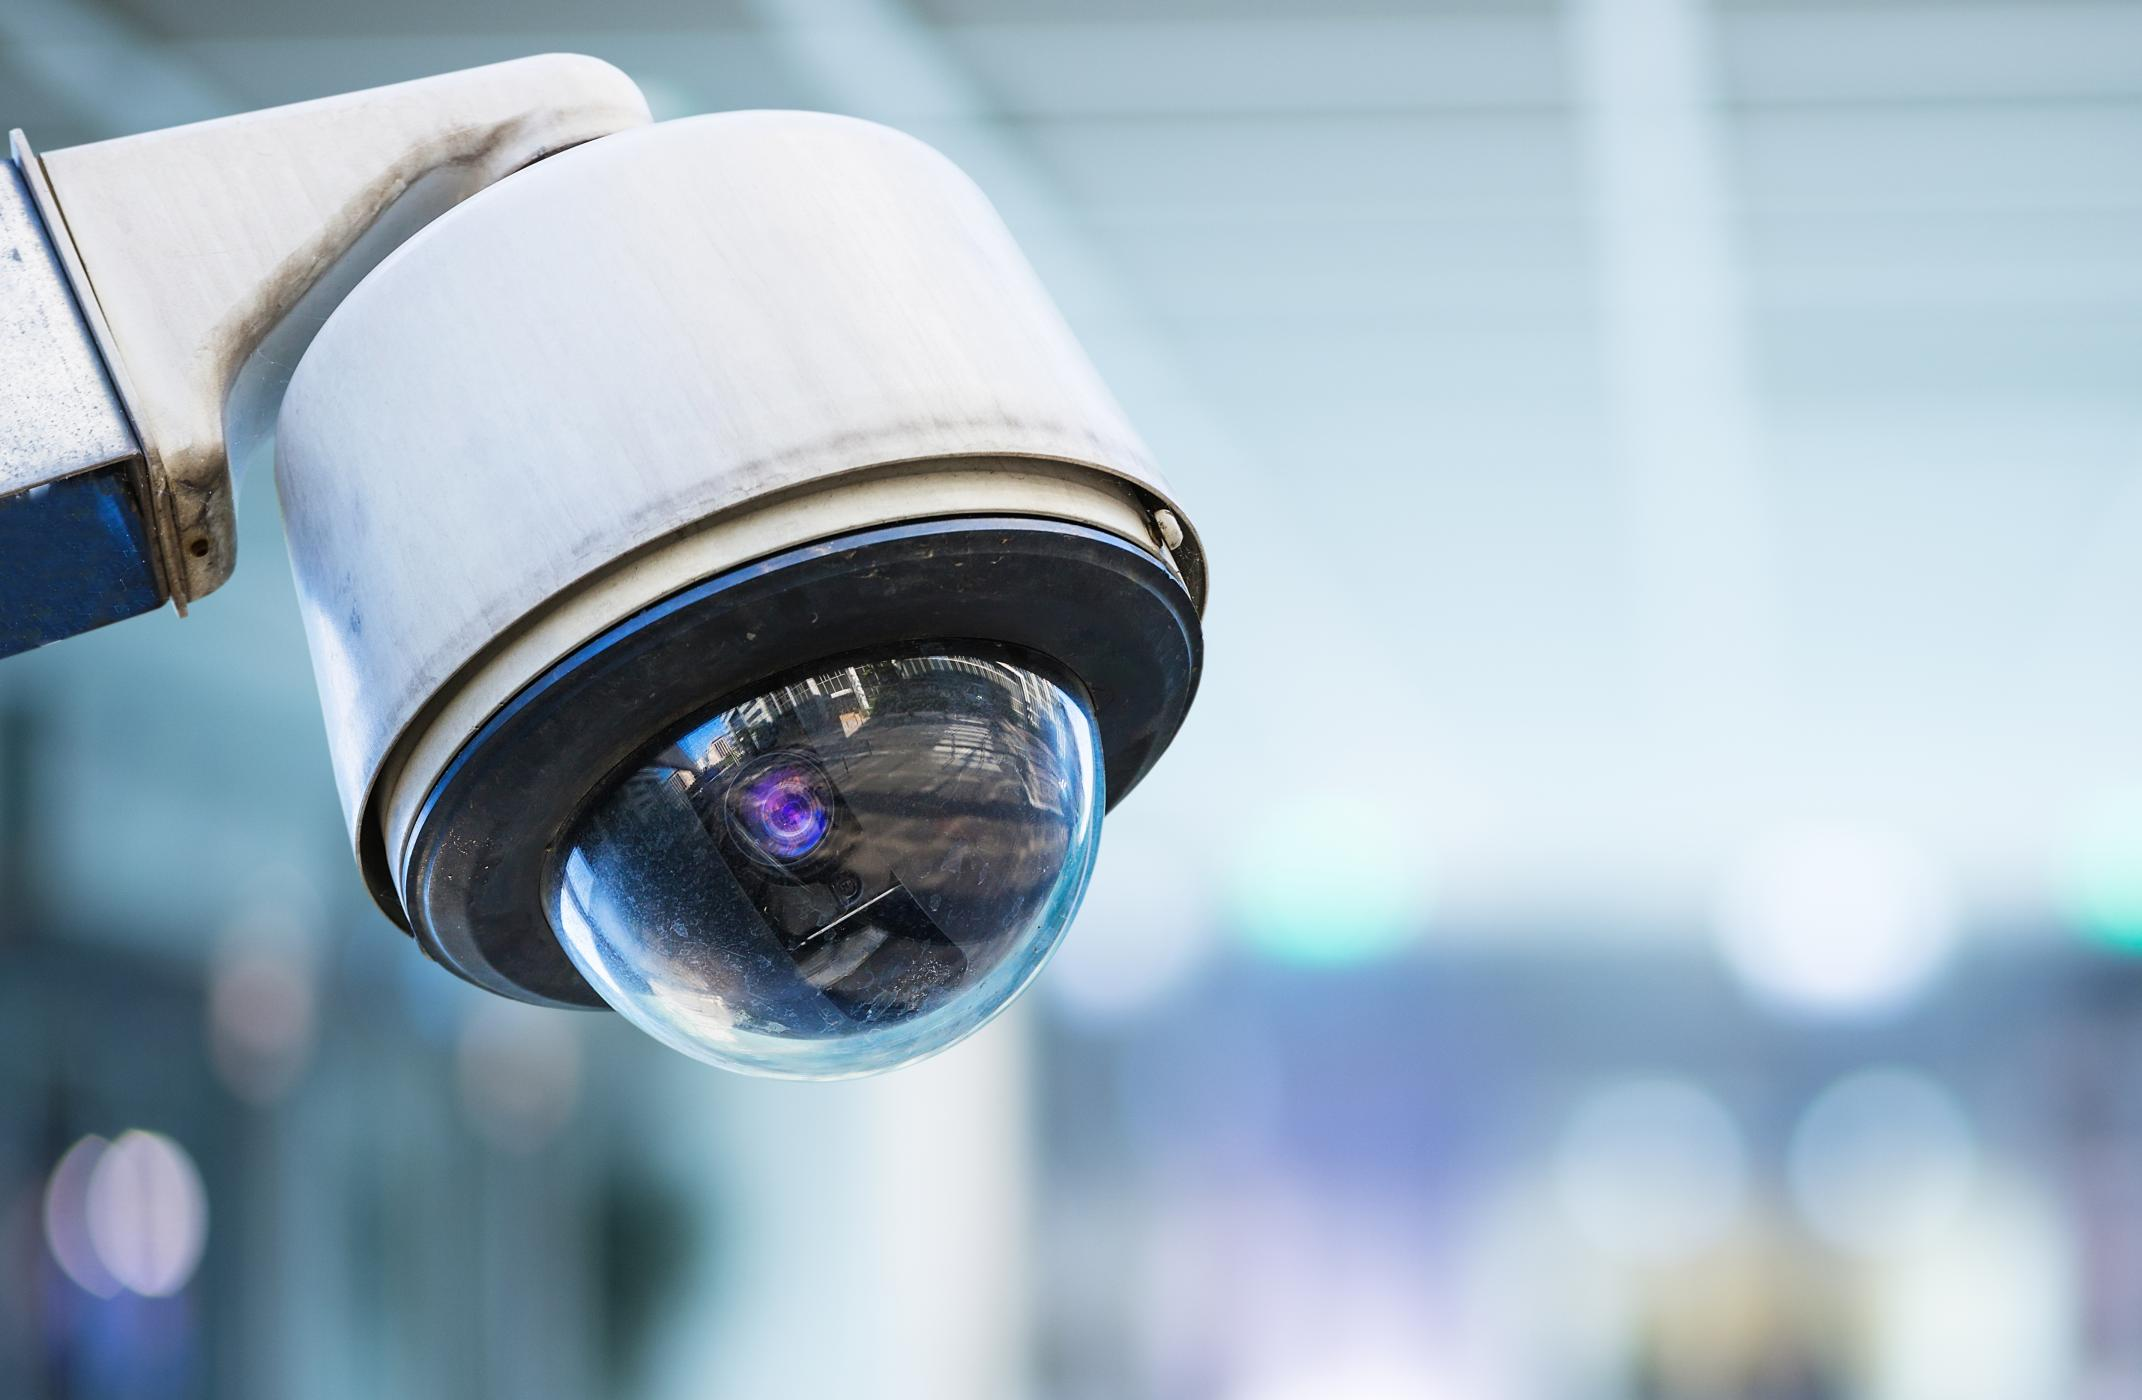 There are now 40,000 CCTV cameras in operation across Manchester, The Manc